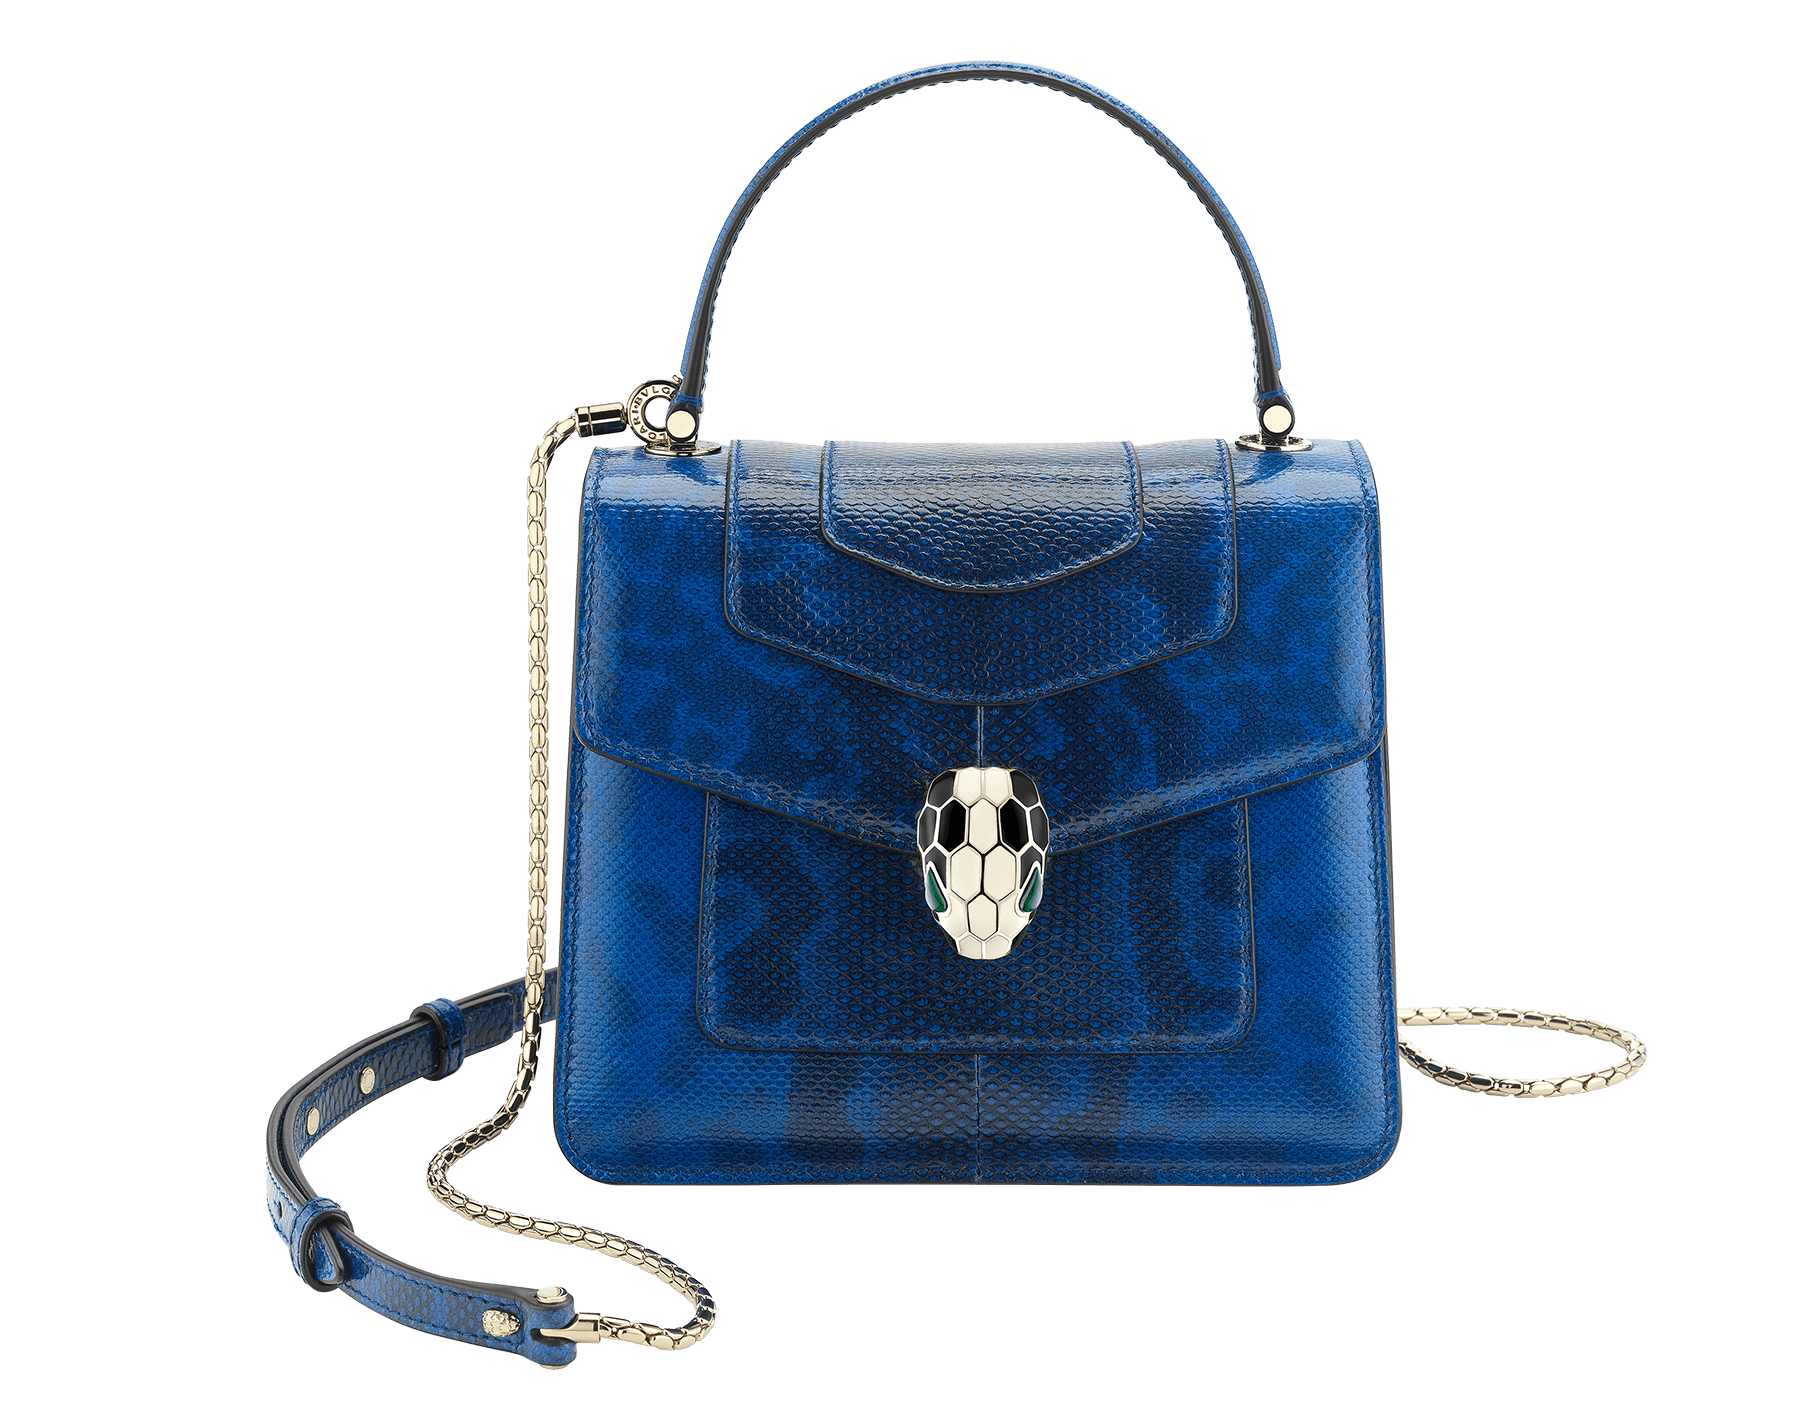 """""""Serpenti Forever """" crossbody bag in shiny cobalt tourmaline karung skin. Iconic snakehead closure in light gold plated brass enriched with black and white enamel and green malachite eyes 287335 image 1"""